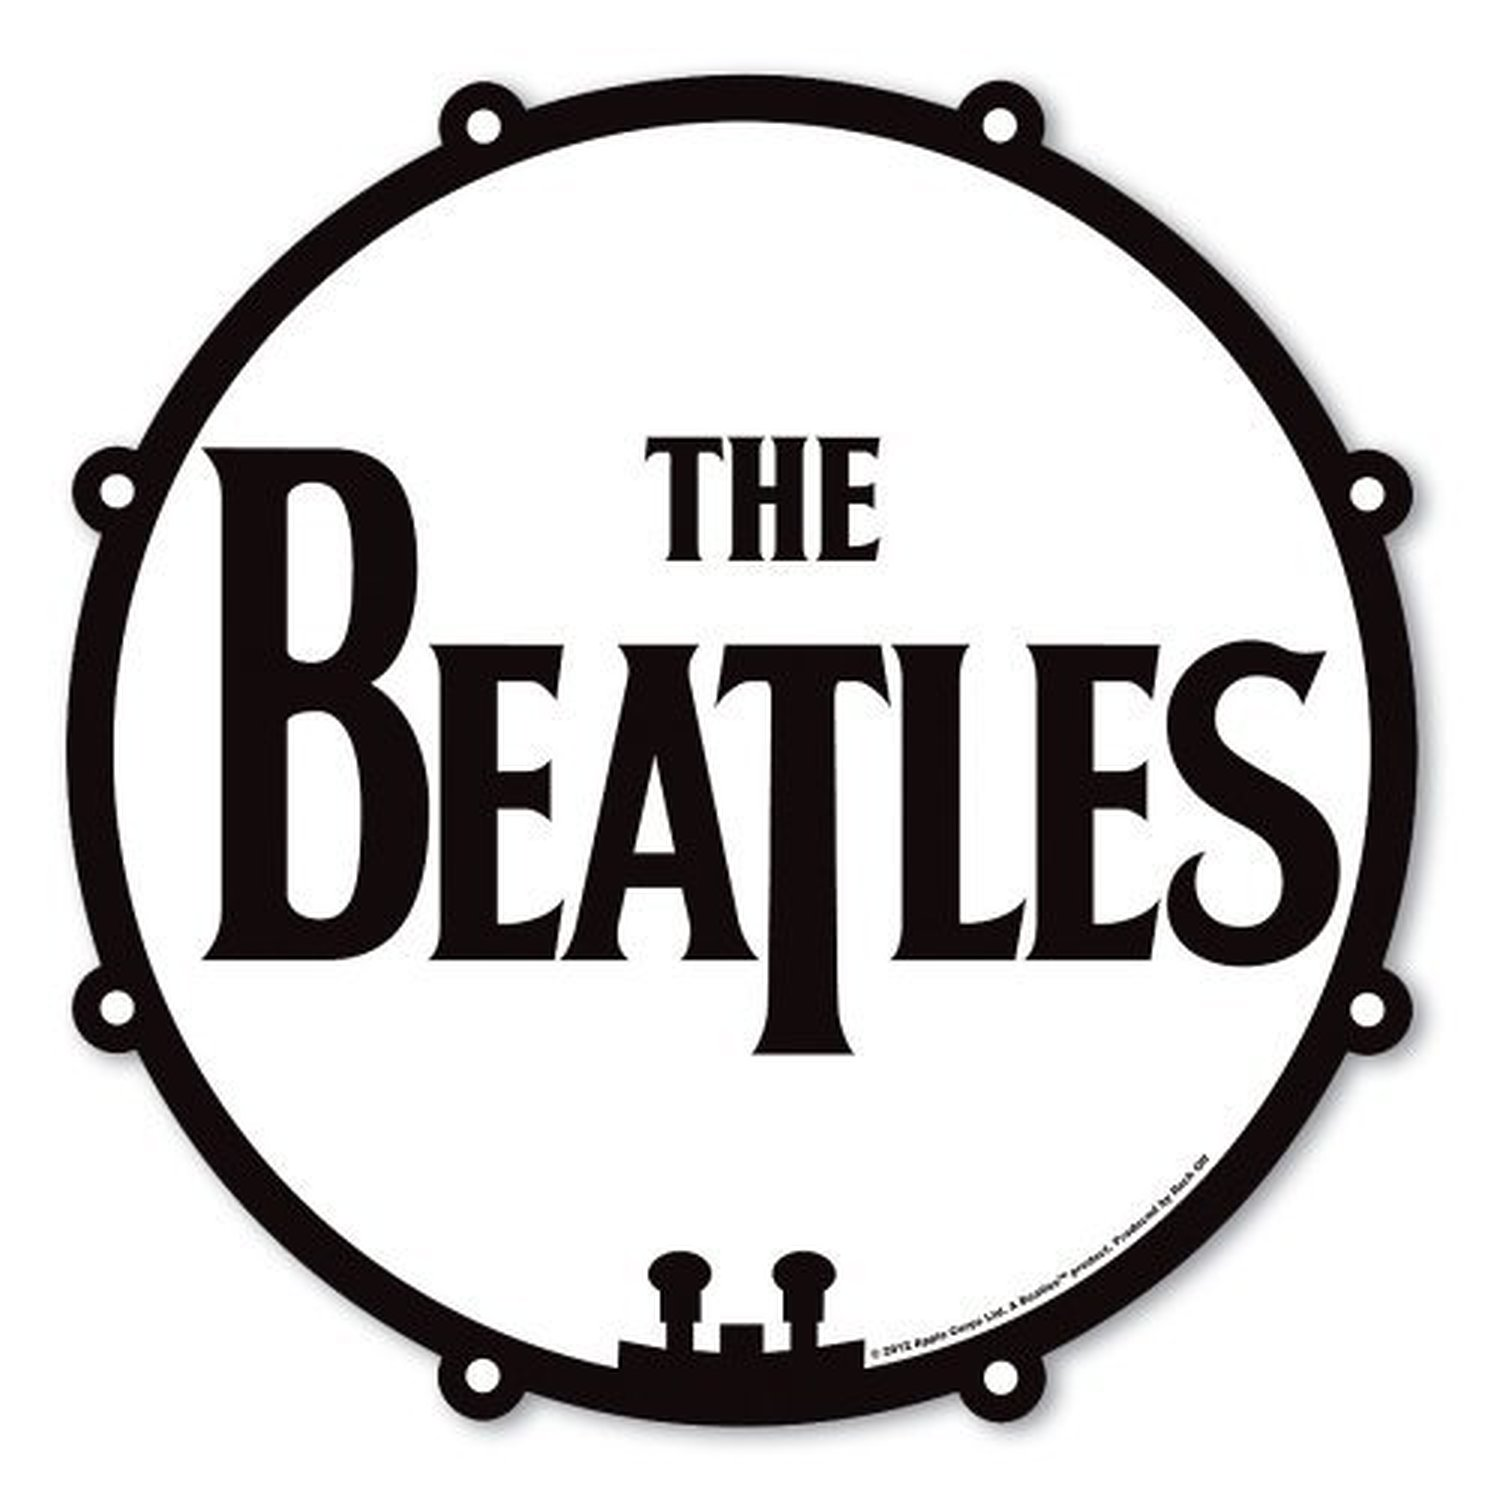 The Beatles Drum Logo Drop T Black White Mouse Mat Gaming Pad